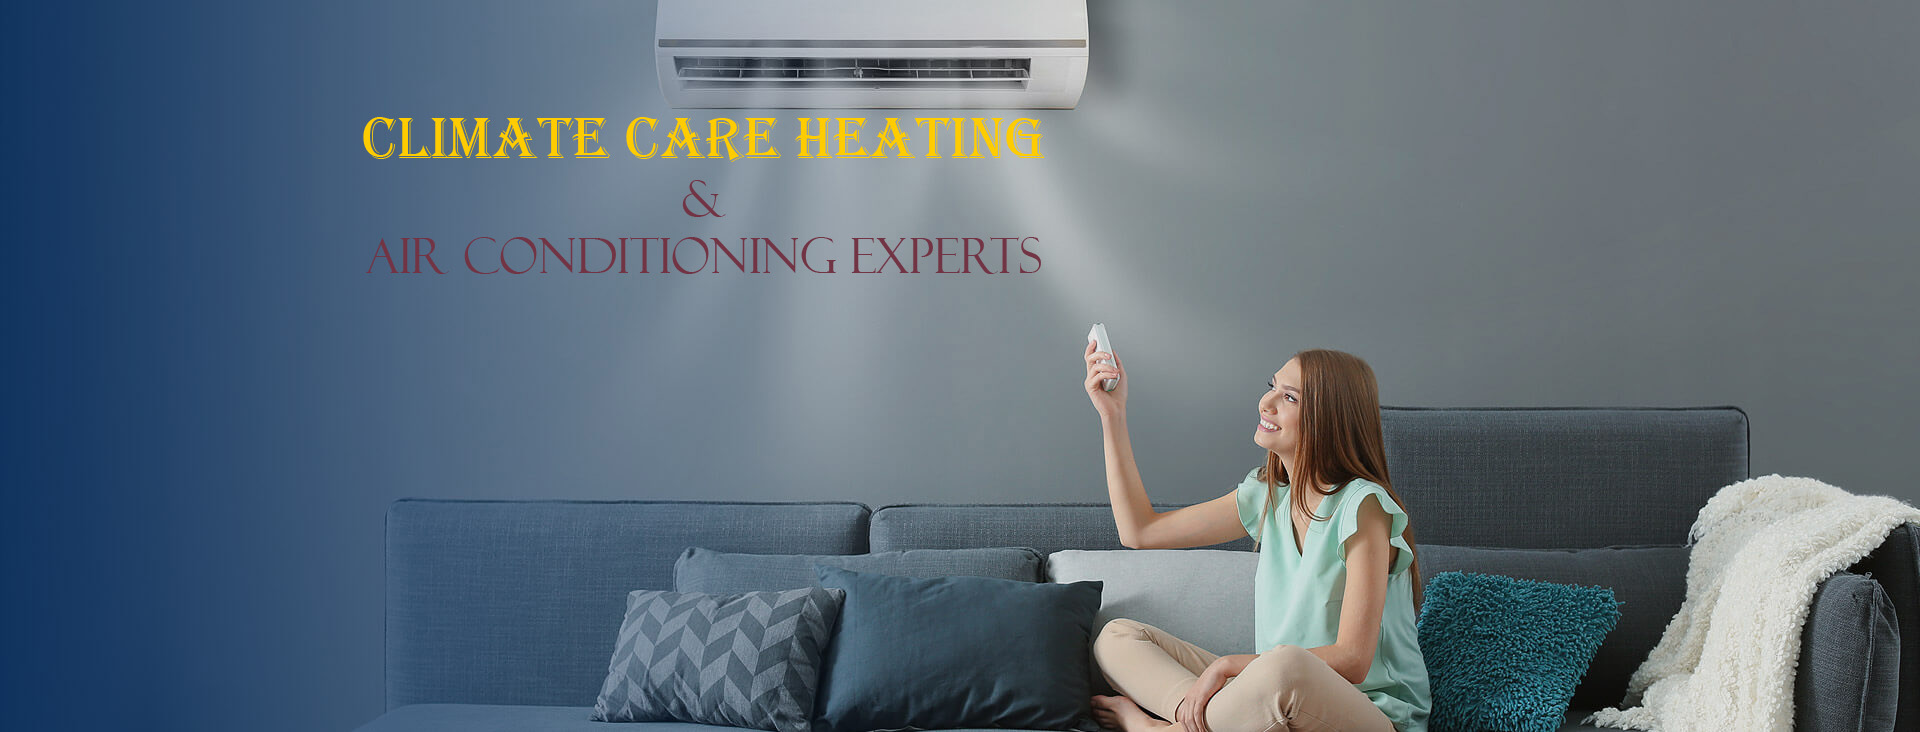 CLIMATE CARE HEATING AND AIR CONDITIONING EXPERTS